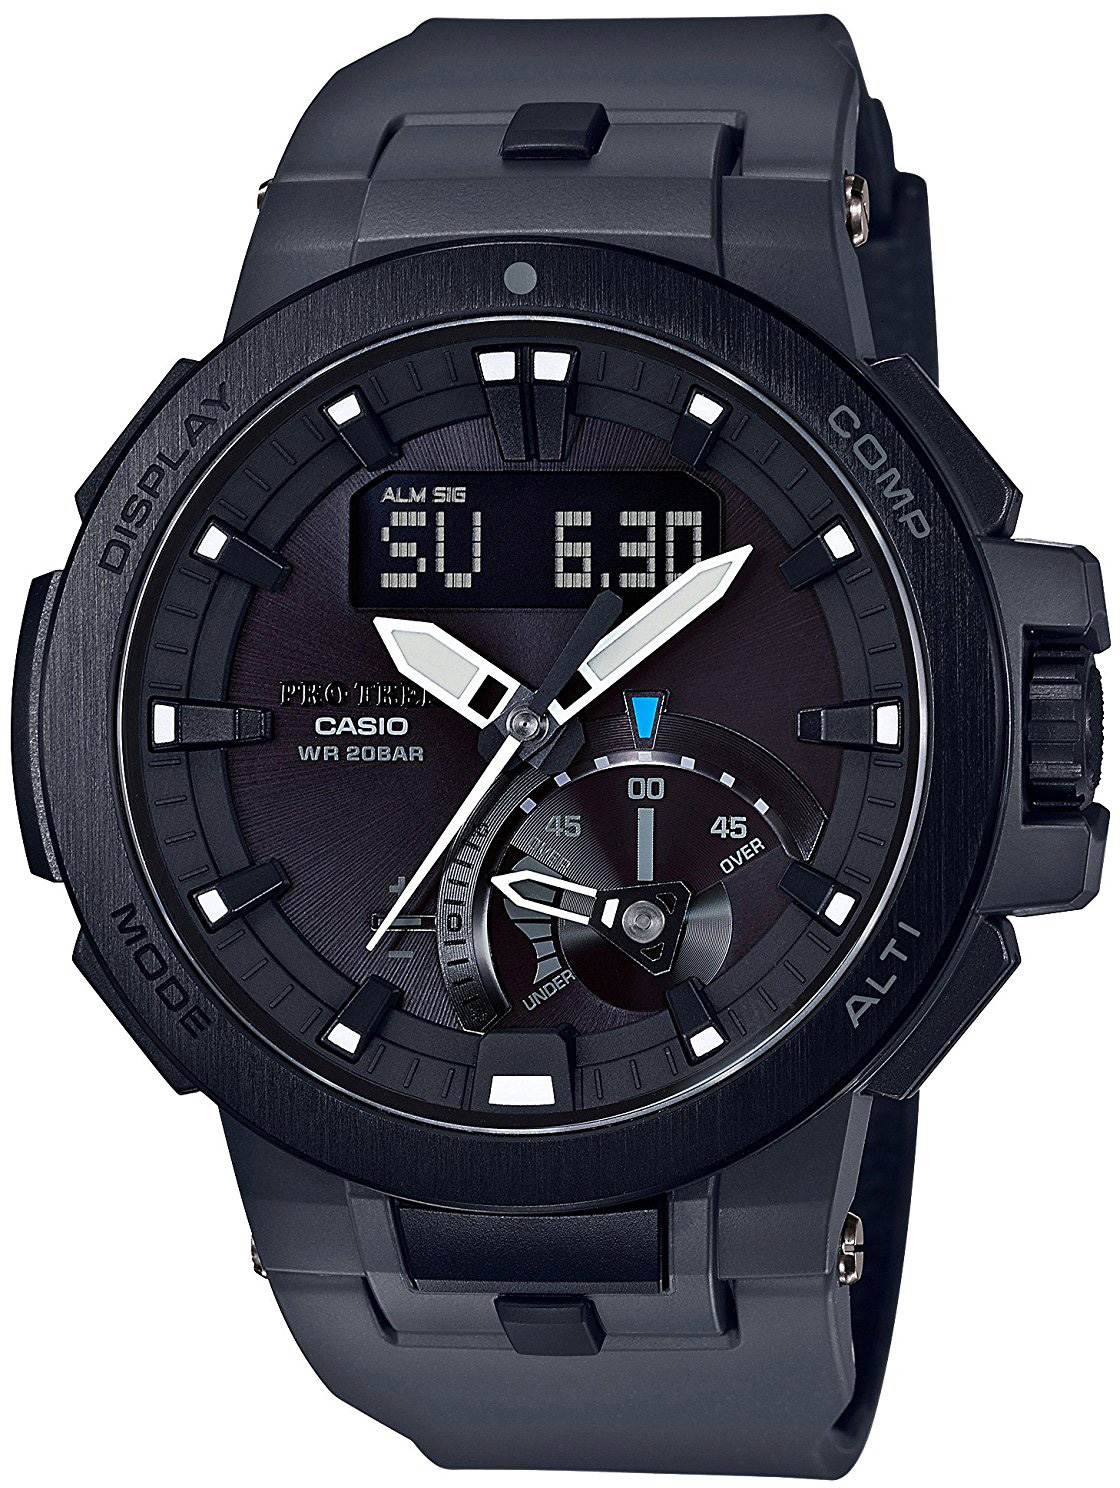 Casio Pro Trek Multi-Field PRW-7000-8E кварцевые часы casio sport prw 6000y 1a black